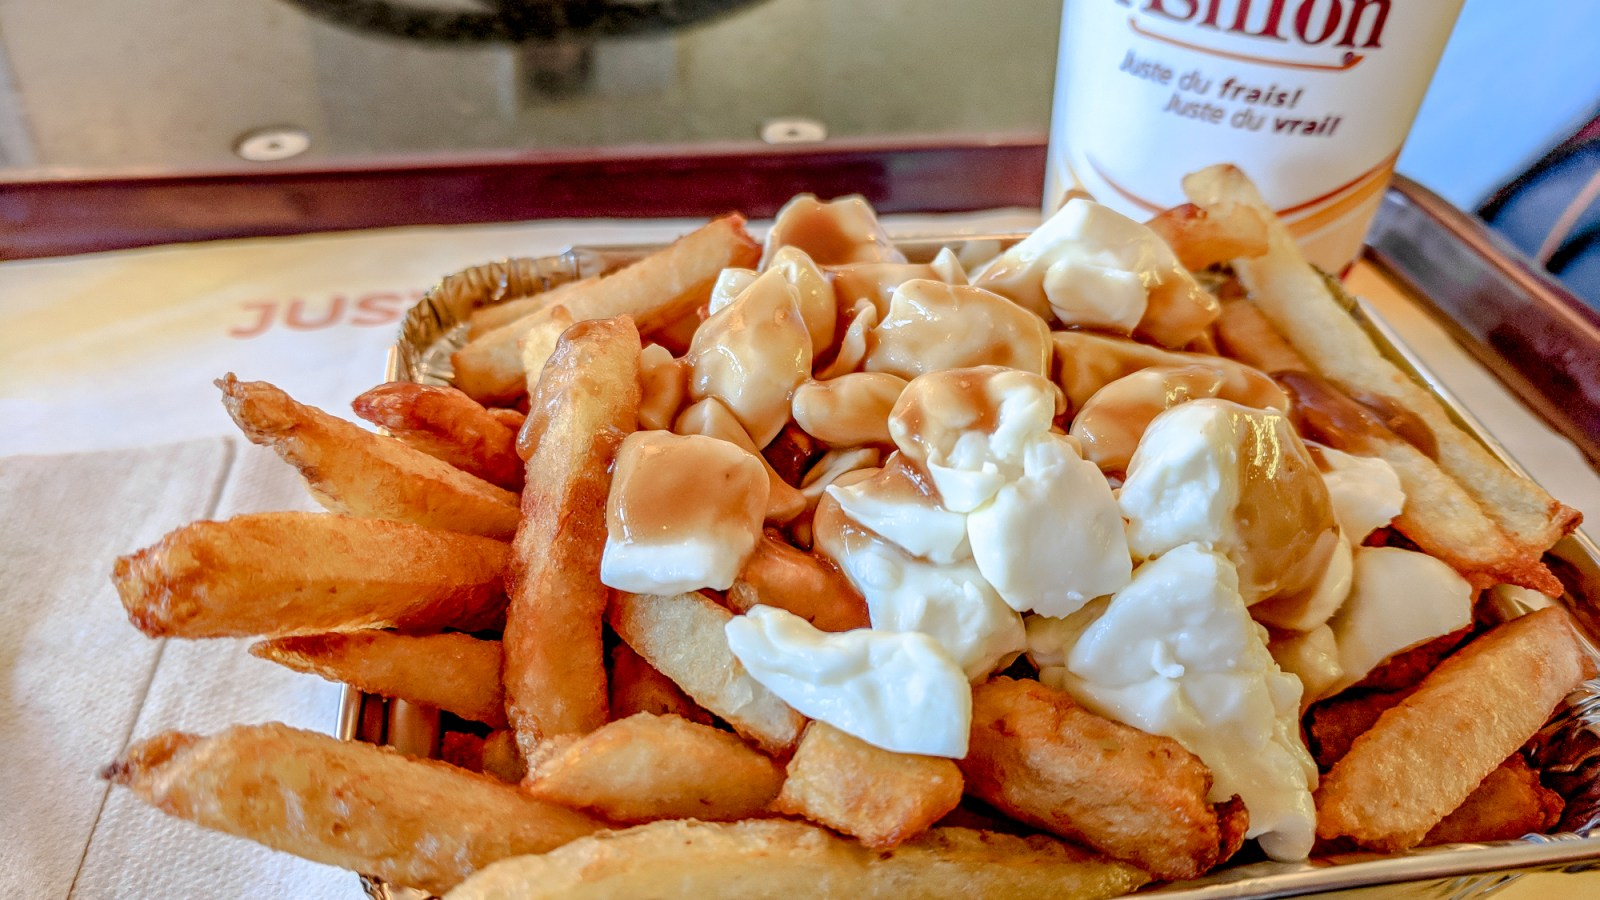 The best (my favorite) places to eat and drink in Québec City, Canada. This city has some of the best food (poutine!!), beer, and atmosphere I've experienced anywhere.